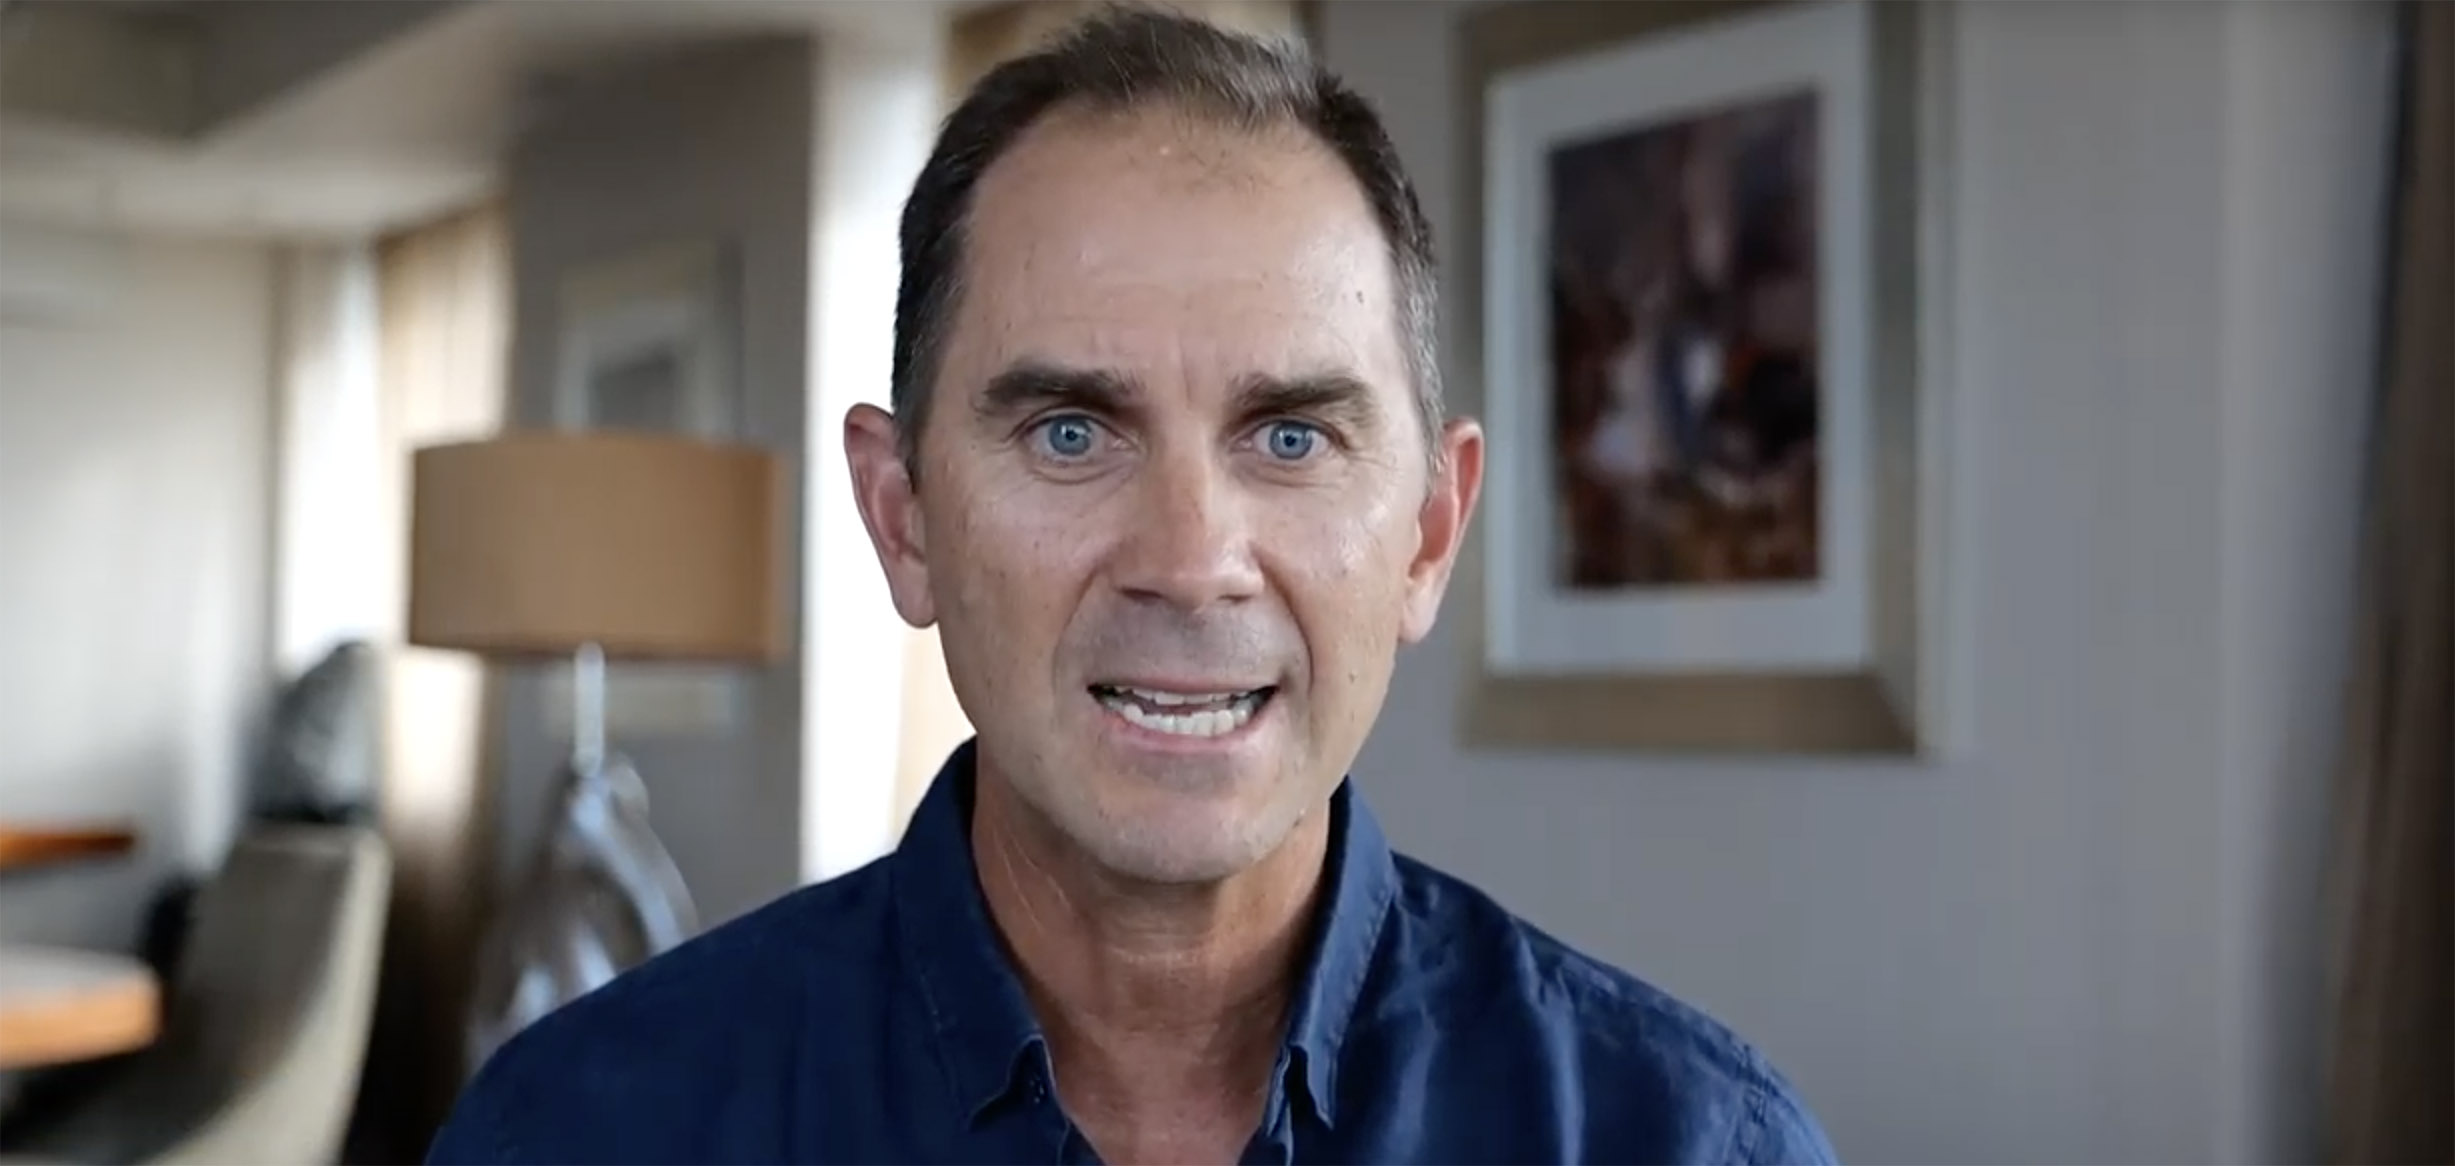 Justin Langer is proud to be an ambassador for Bravery Trust